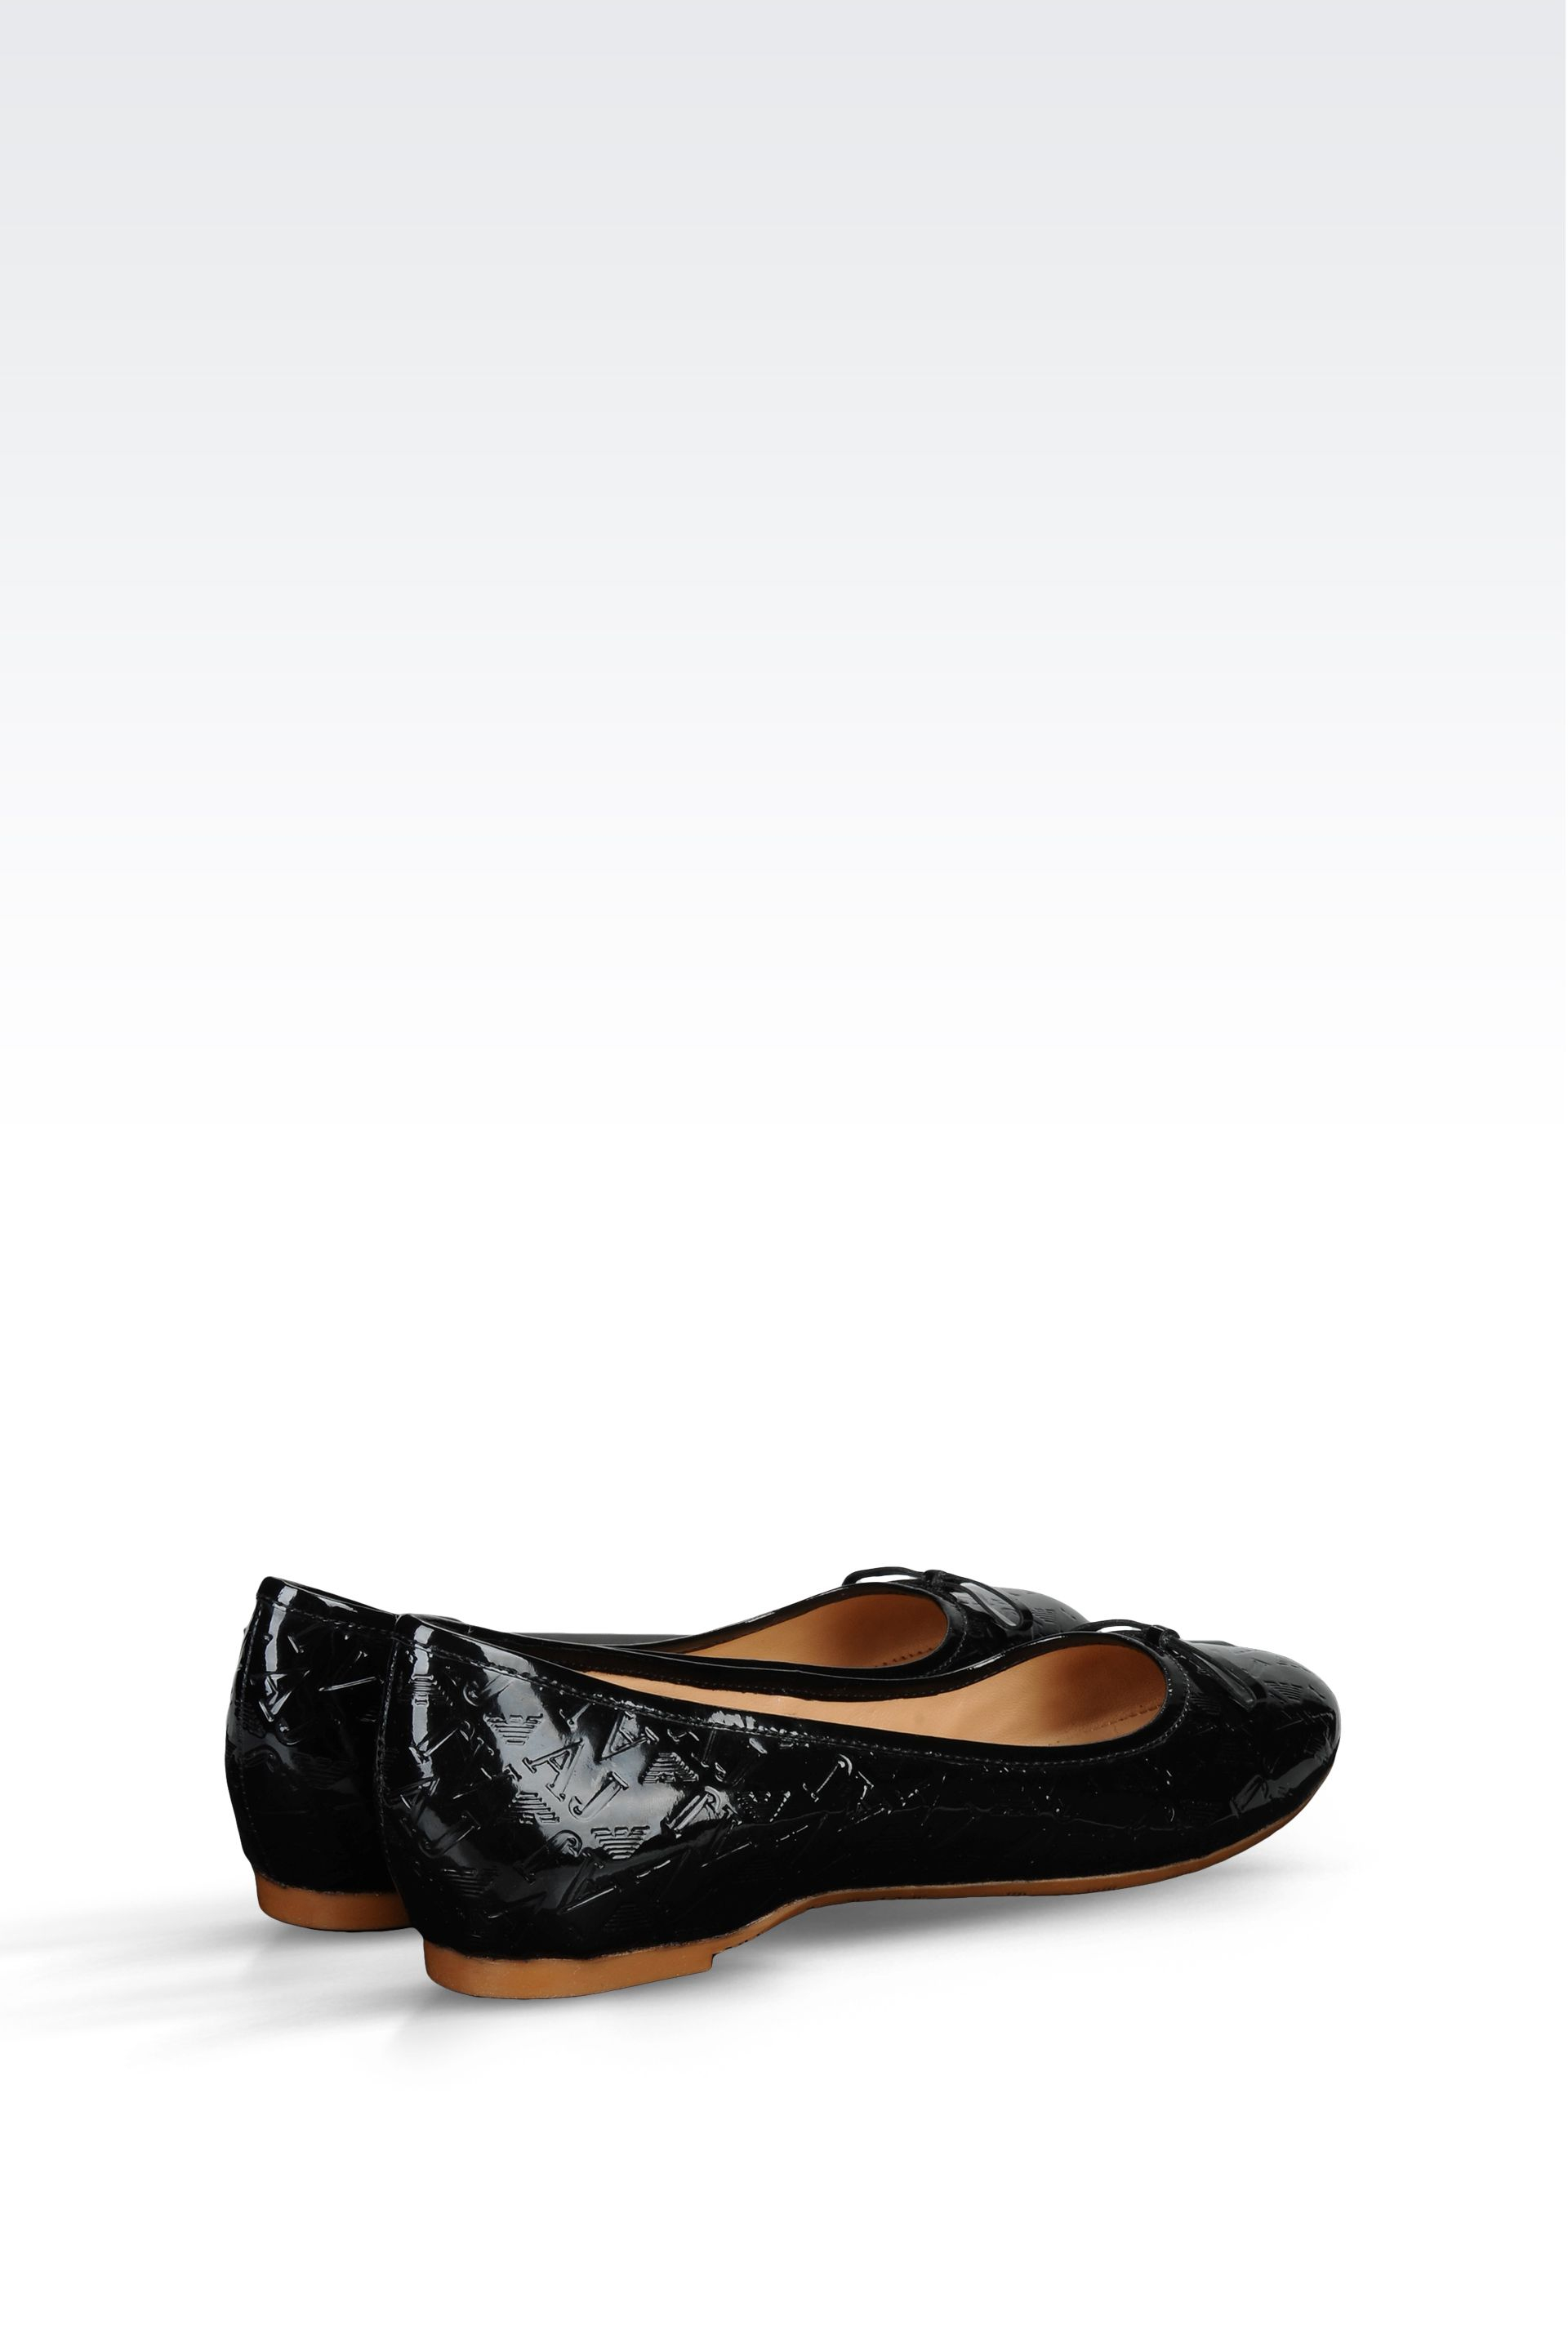 Armani Jeans Patent Ballet Flat With Logo Design In Black